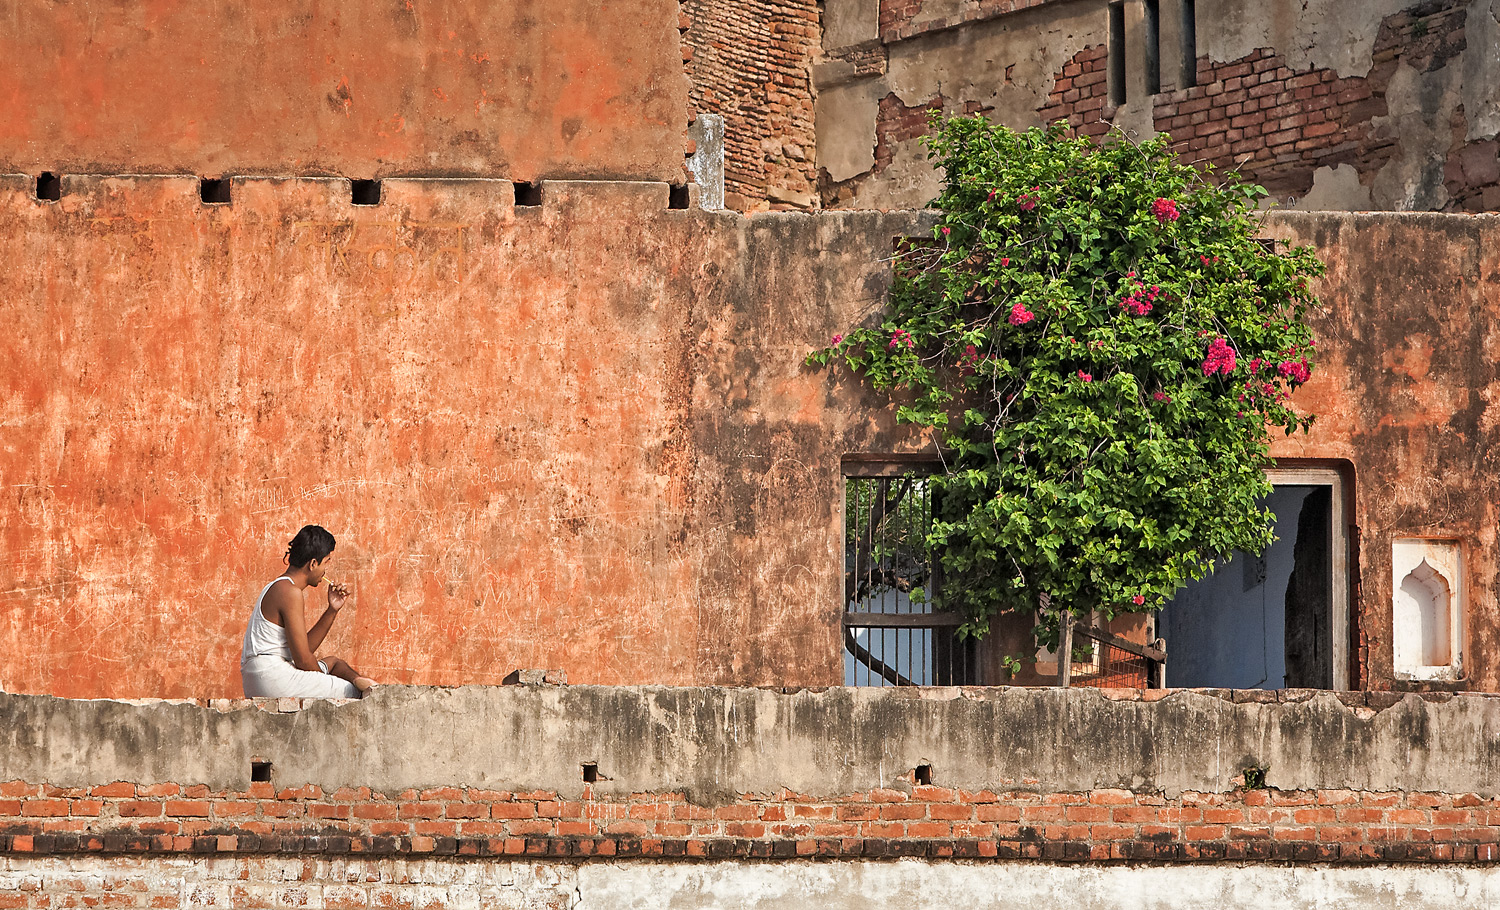 Man brushing teeth above the ghats, Varanasi, India